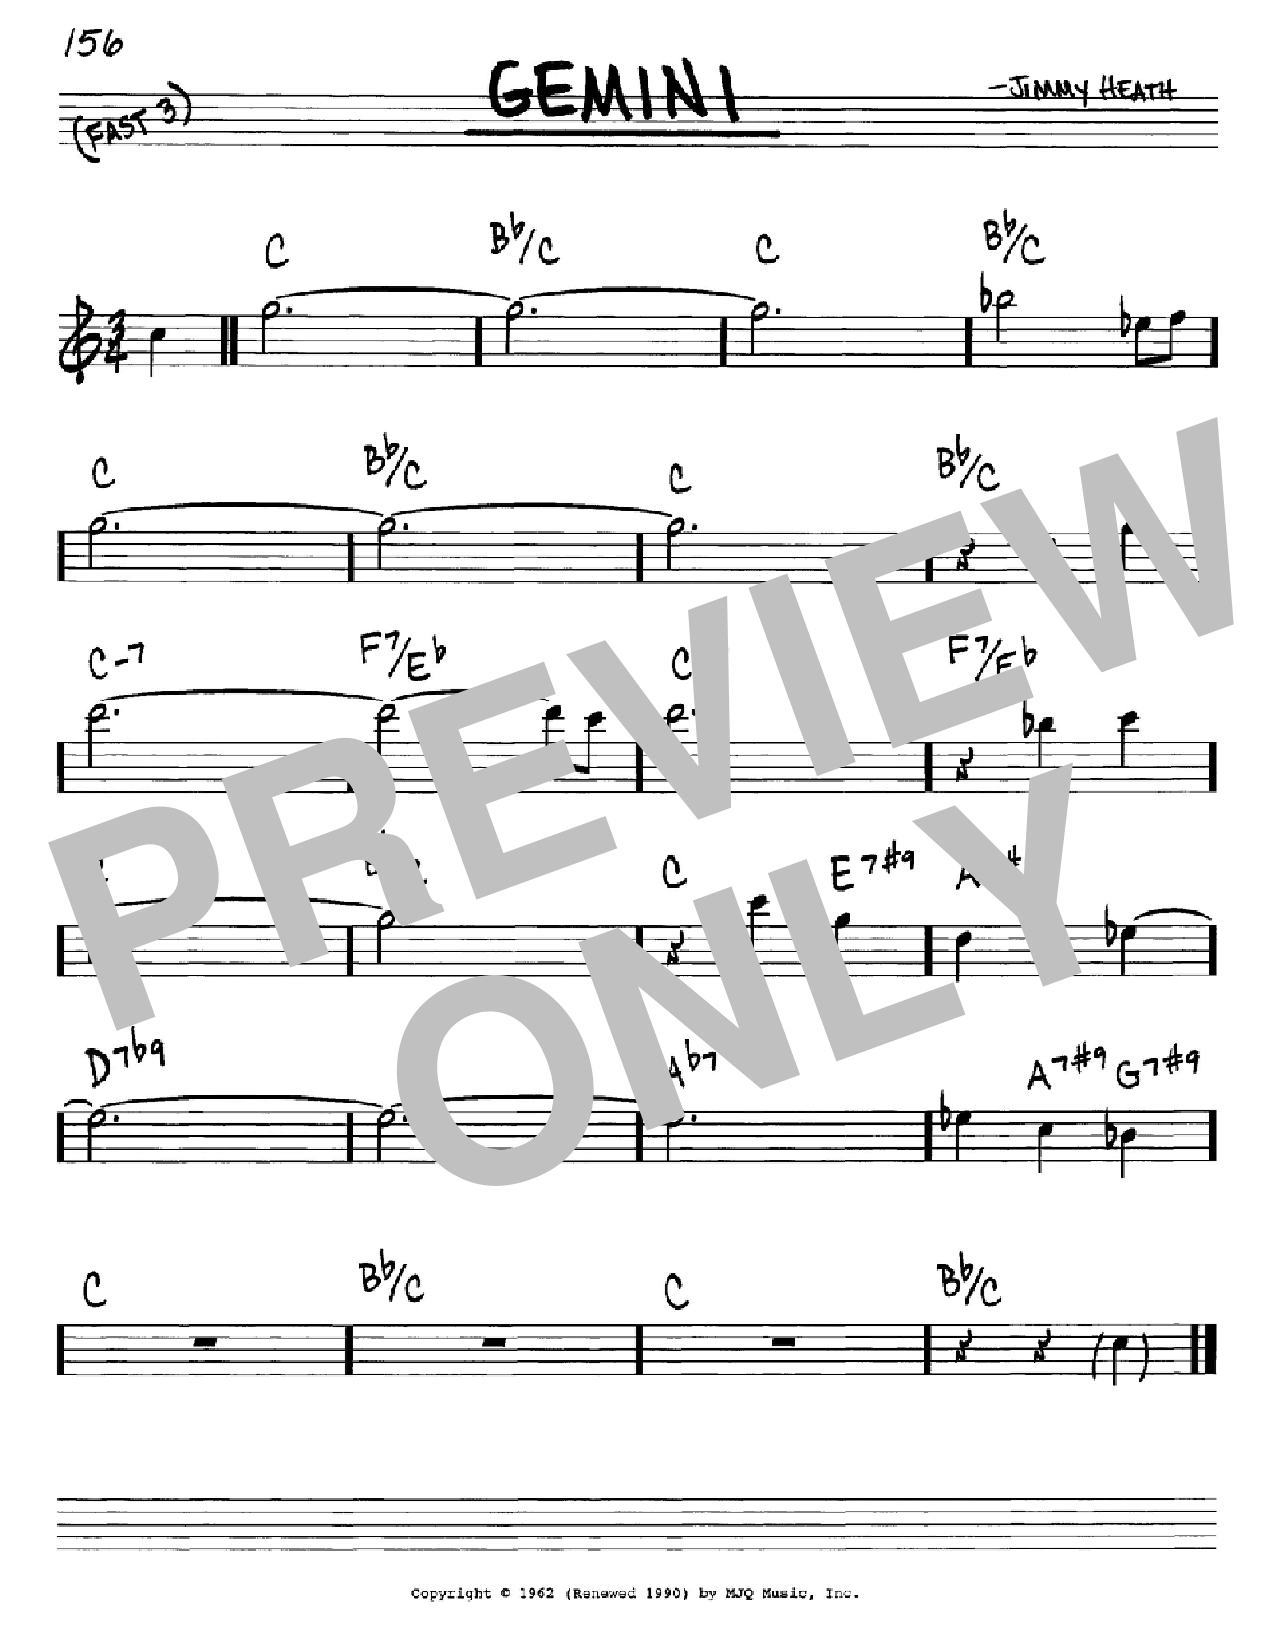 Gemini Sheet Music